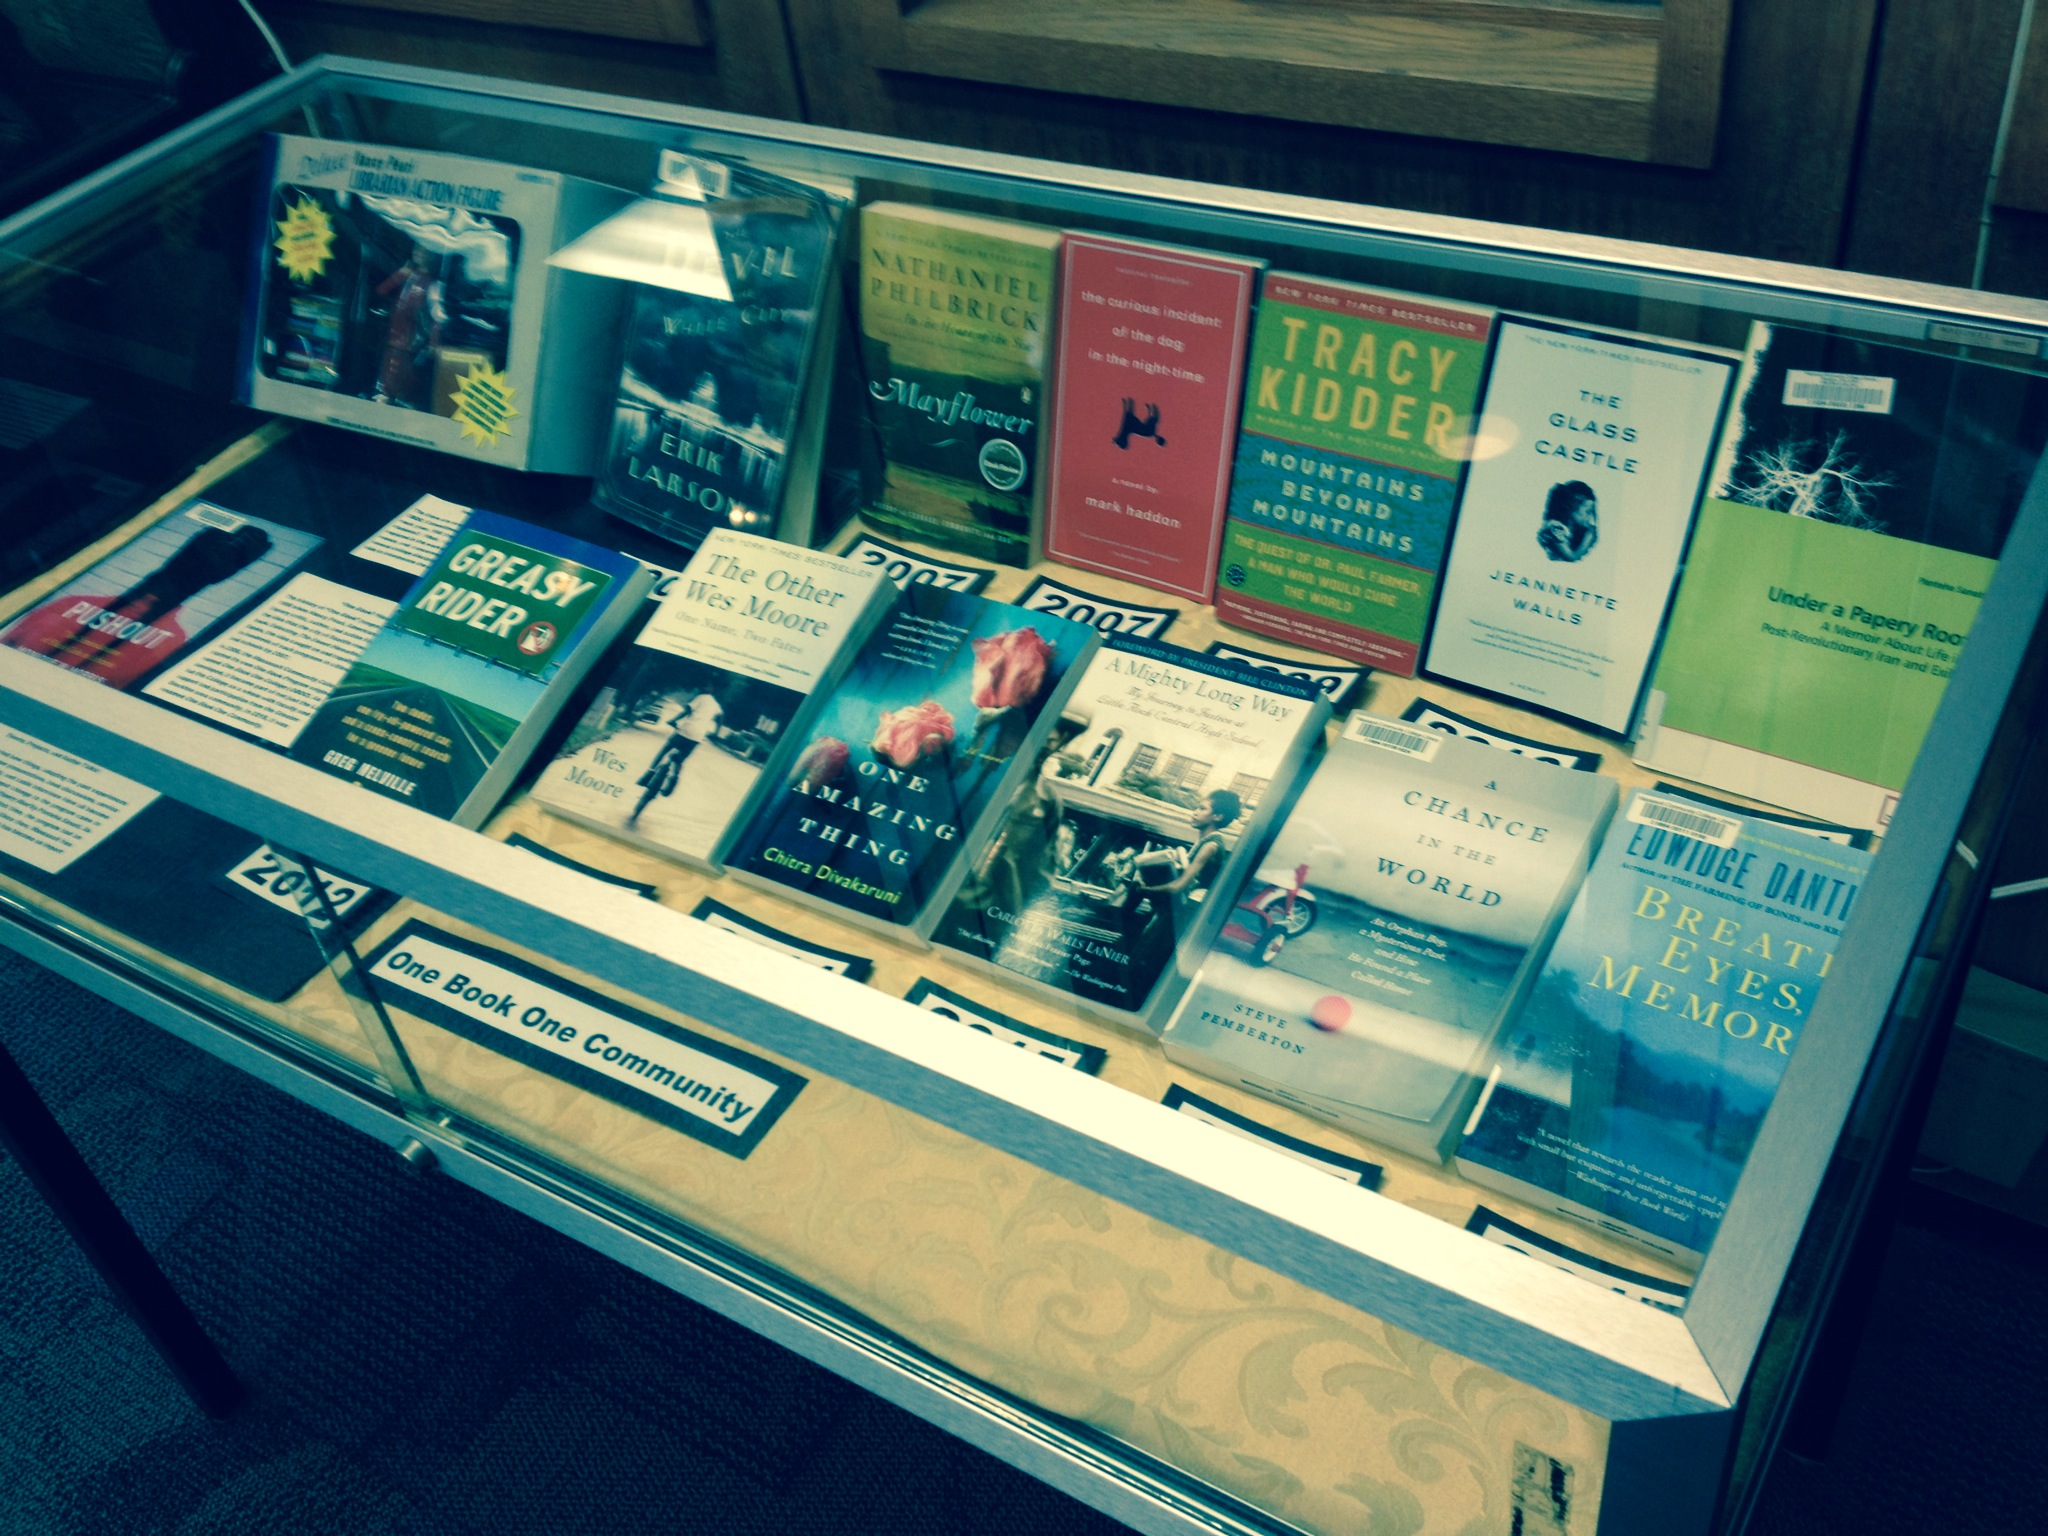 Previous One Book selections in display case